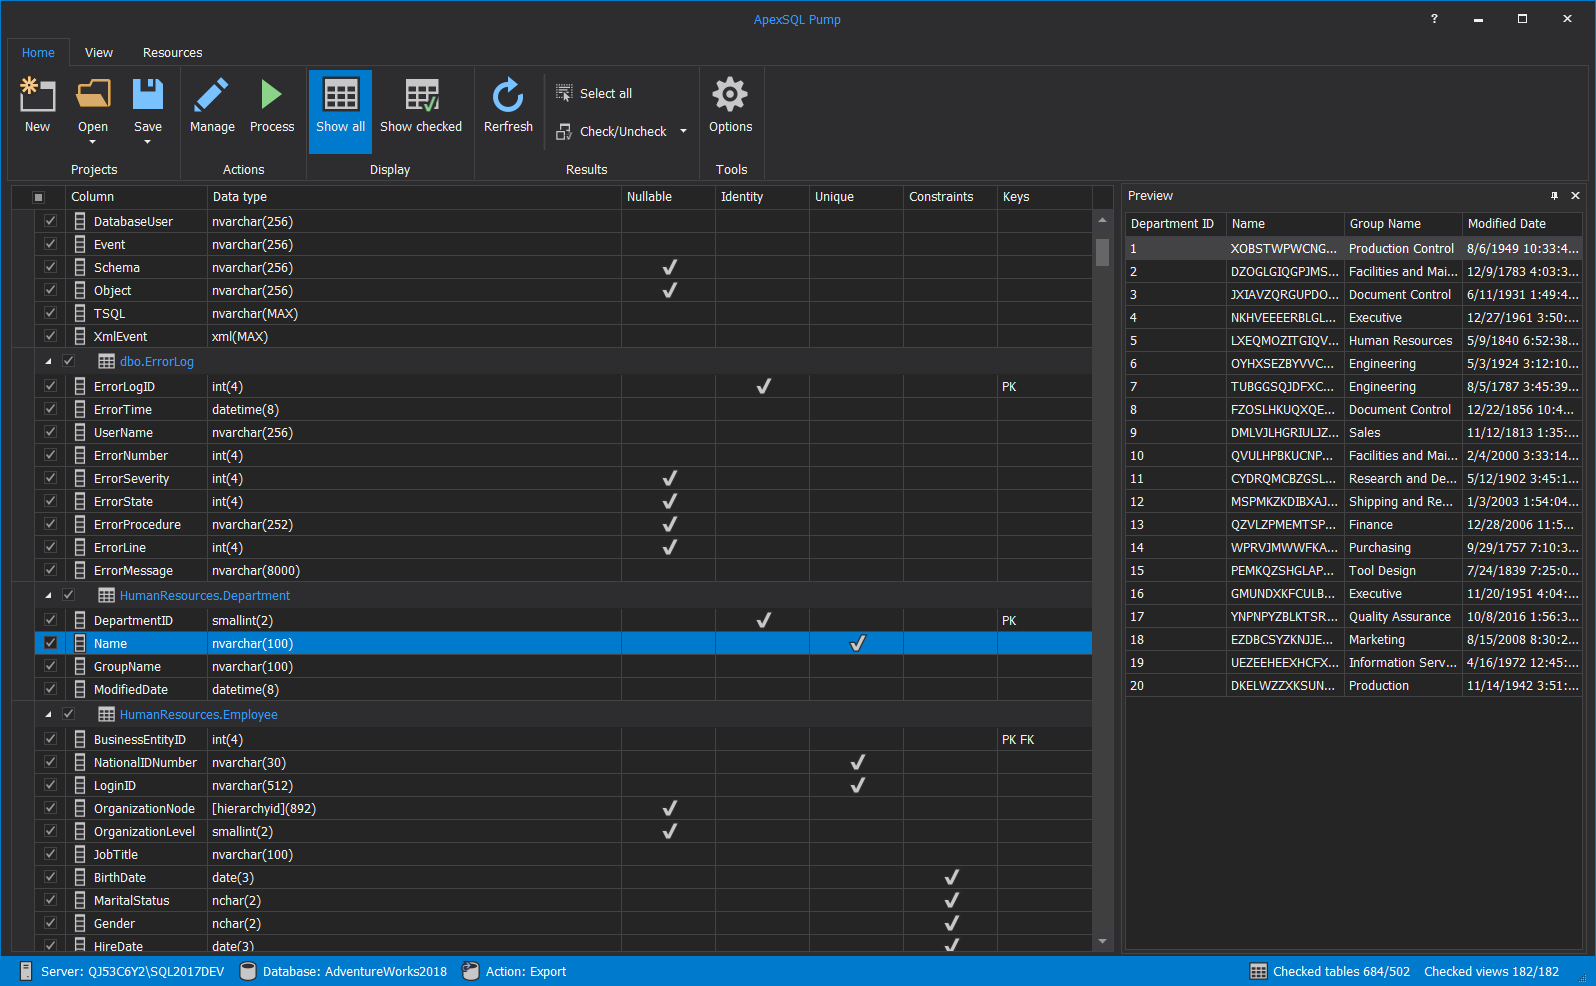 ApexSQL Pump Export main grid with all shown SQL objects